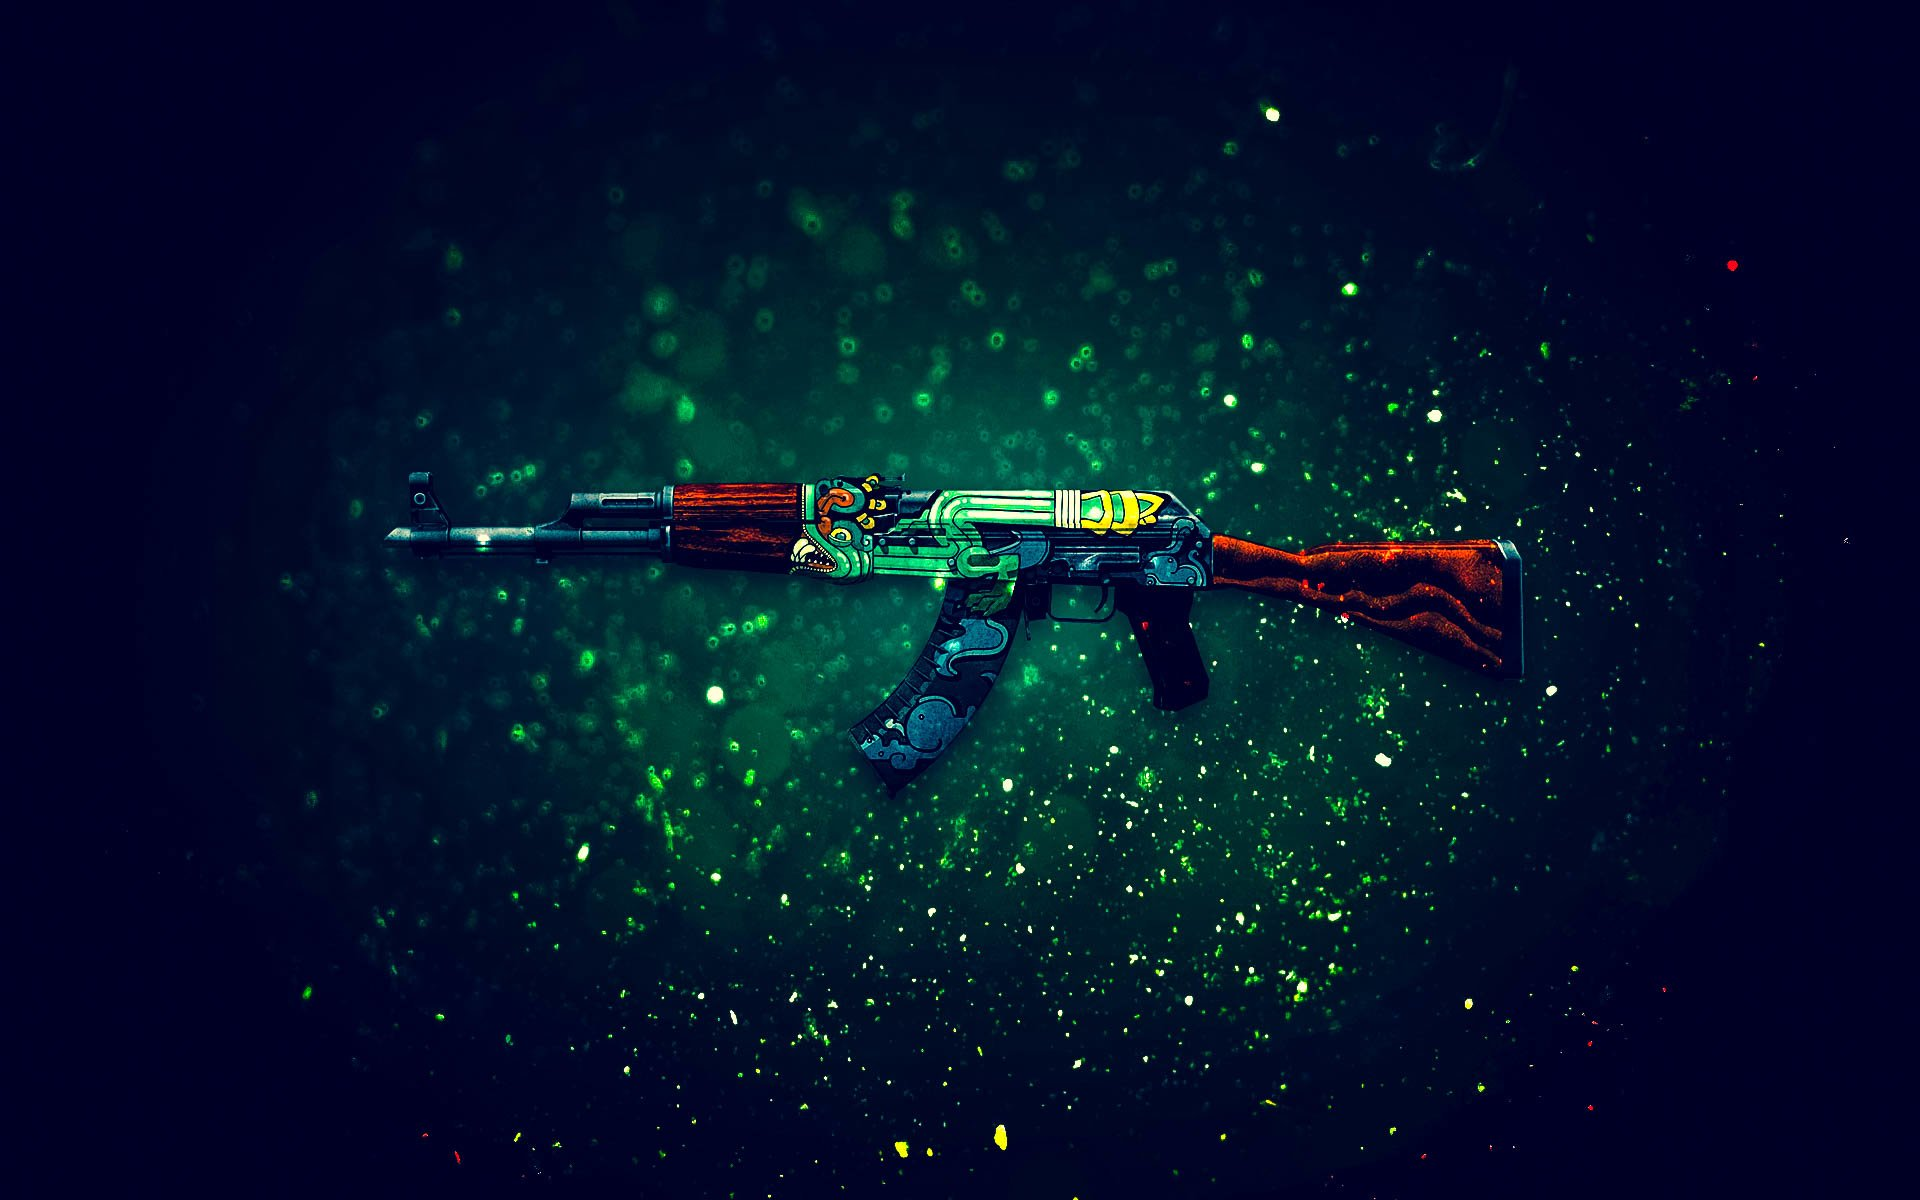 Ak 47 fire serpent full hd wallpaper and background image - Counter strike wallpaper hd ...